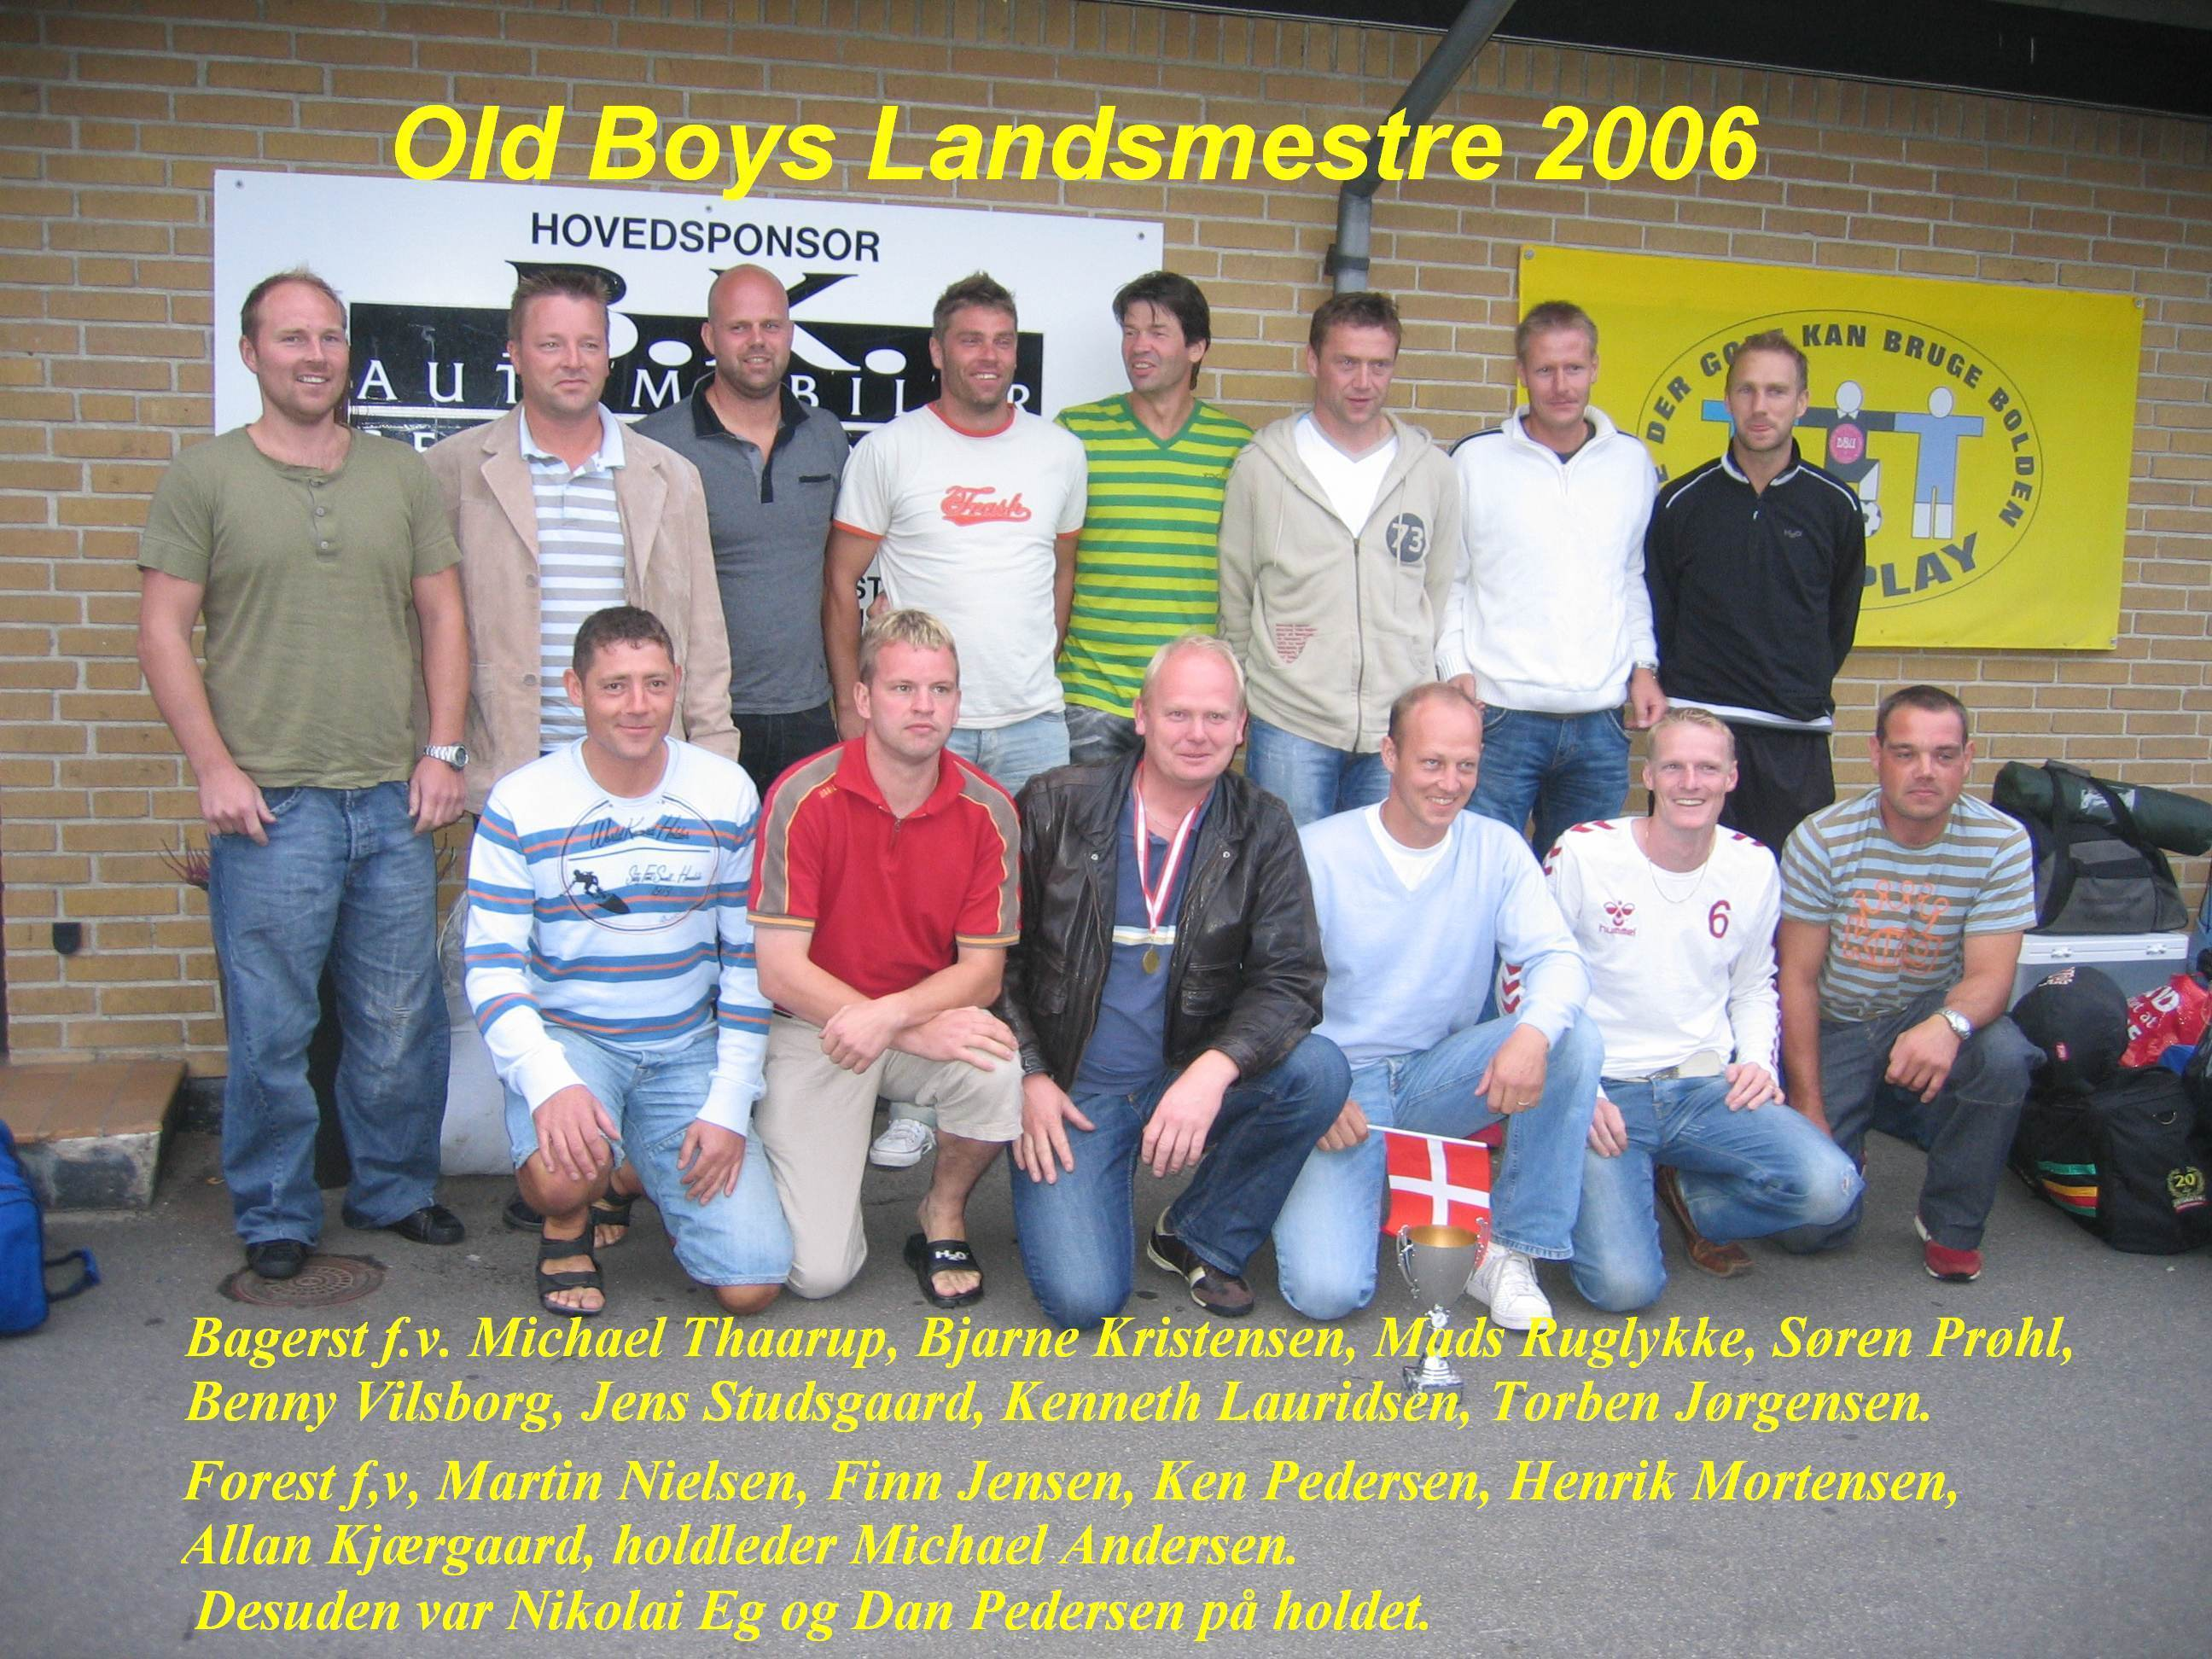 Old Boys Landsmester 2006